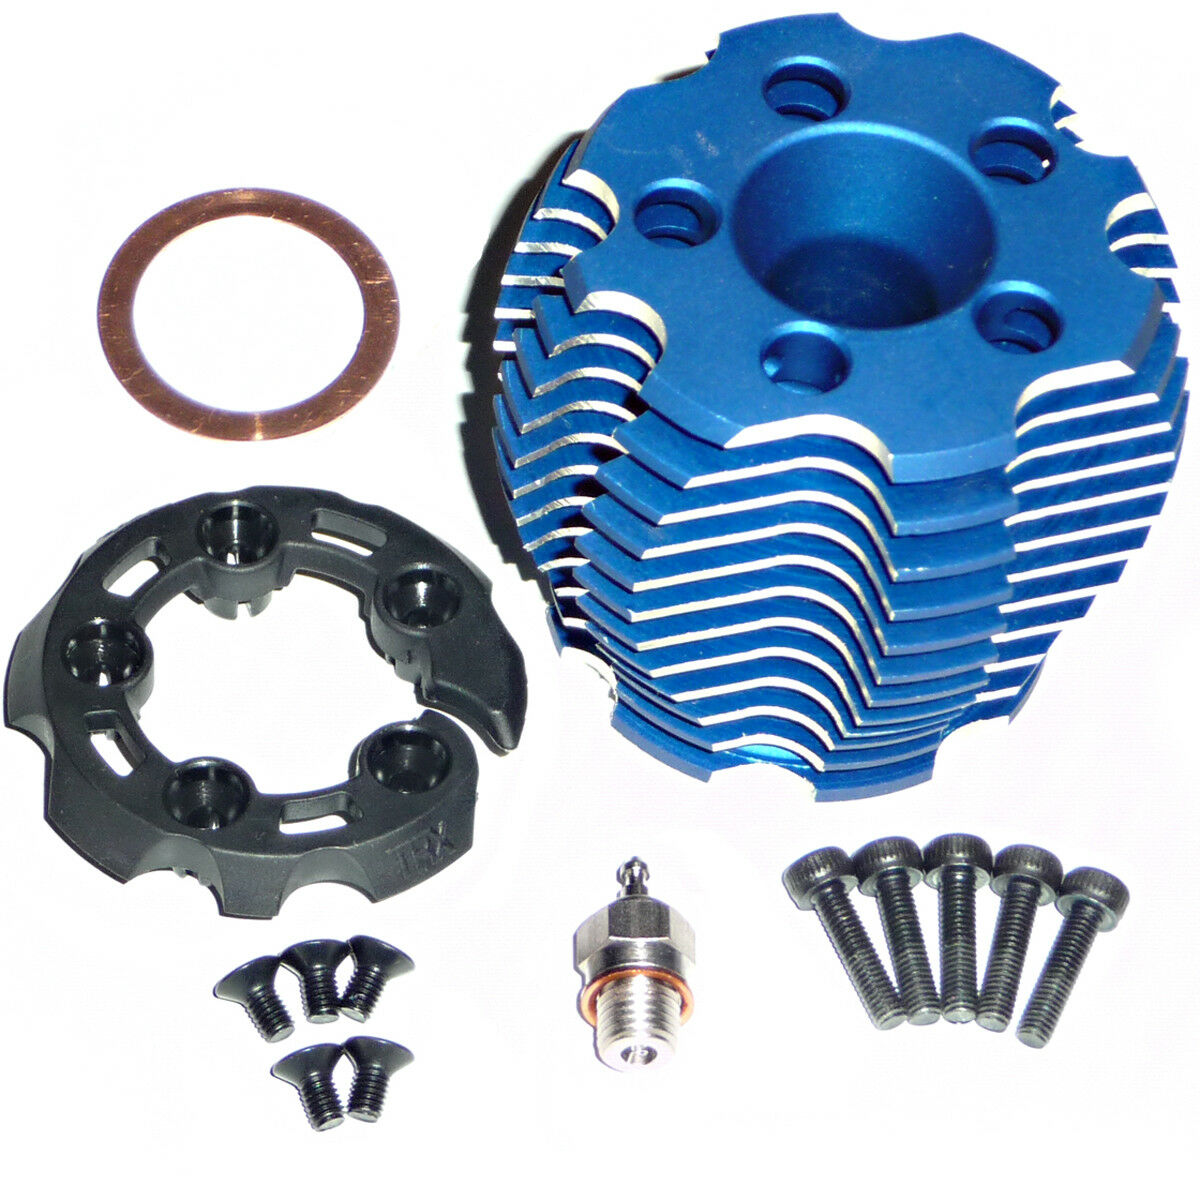 NEW Traxxas Revo TRX 3.3 ALUMINUM COOLING HEAD, PredECTOR, GLOW PLUG, & SCREWS